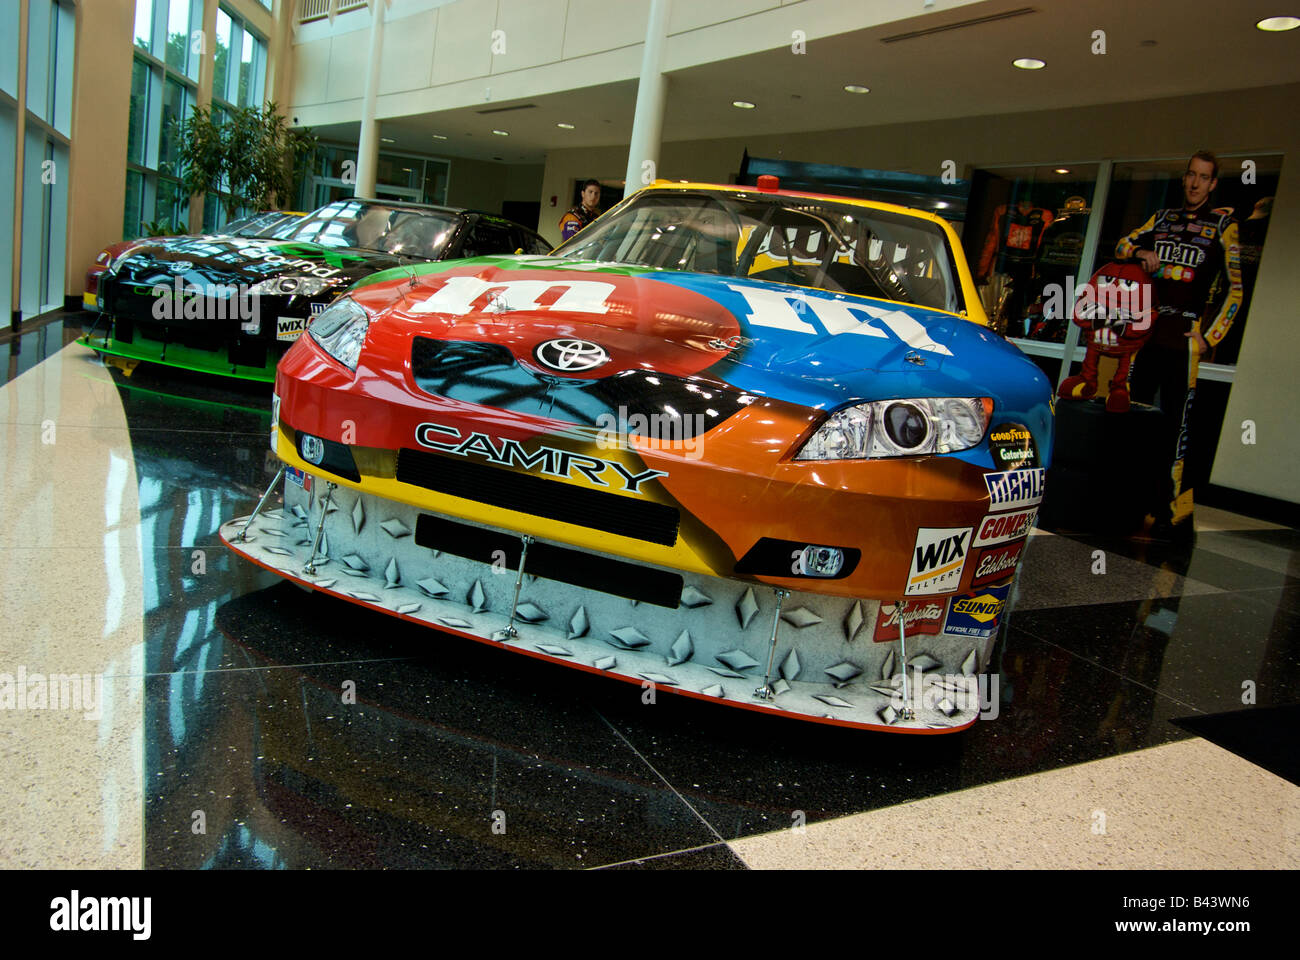 Kyle buschs mm toyota camry nascar race cars with sponsor decals on display at joe gibbs racing showroom